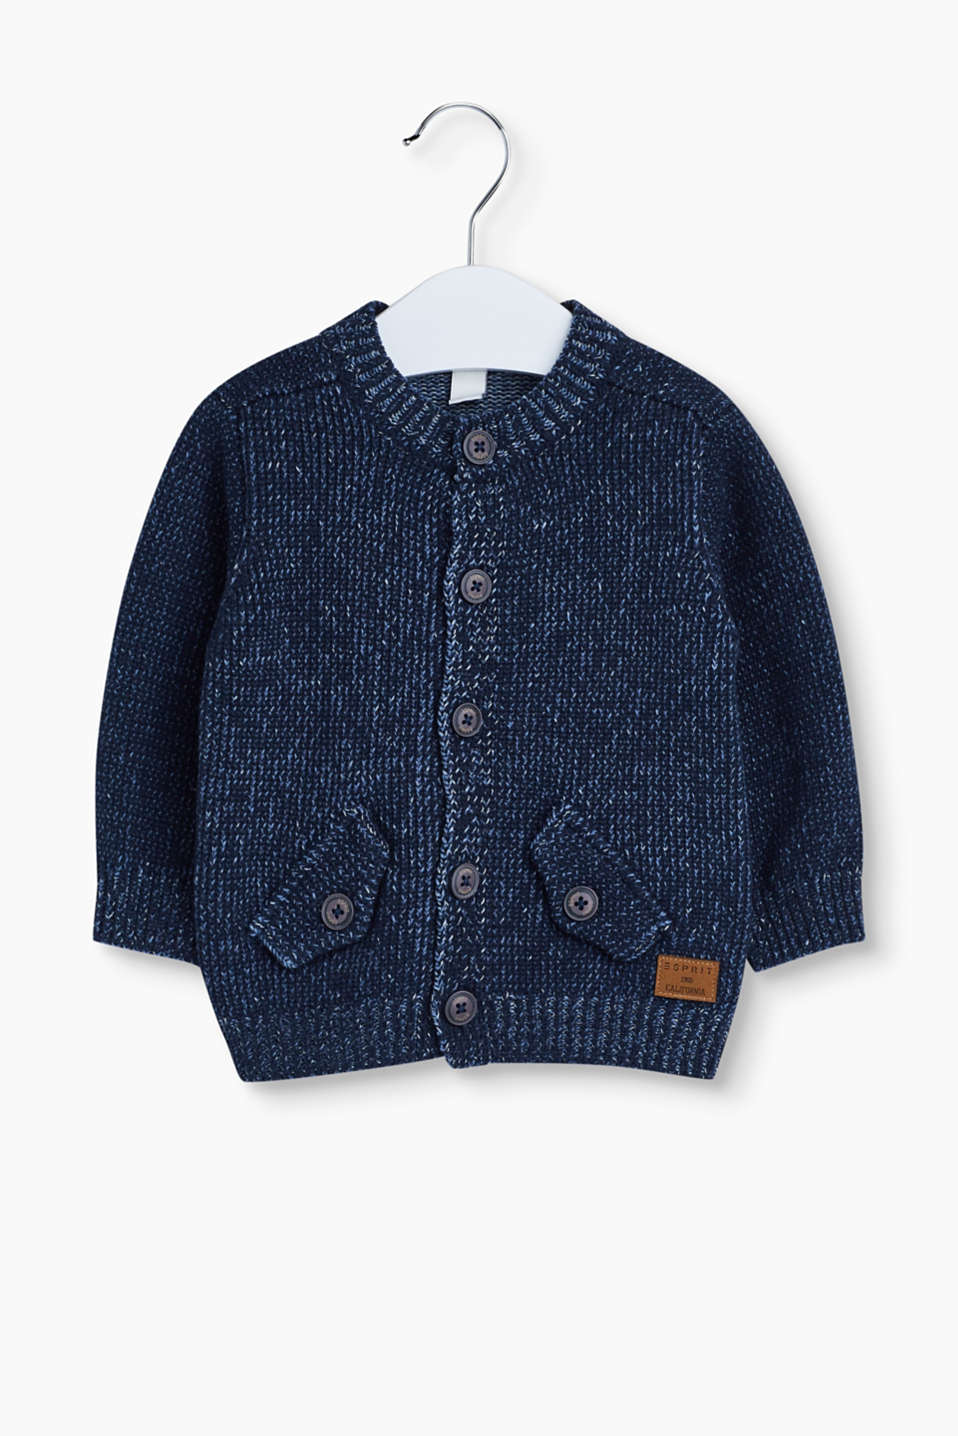 Snug knitwear sensation! The soft cotton yarn makes this melange cardigan with patch pockets something special.